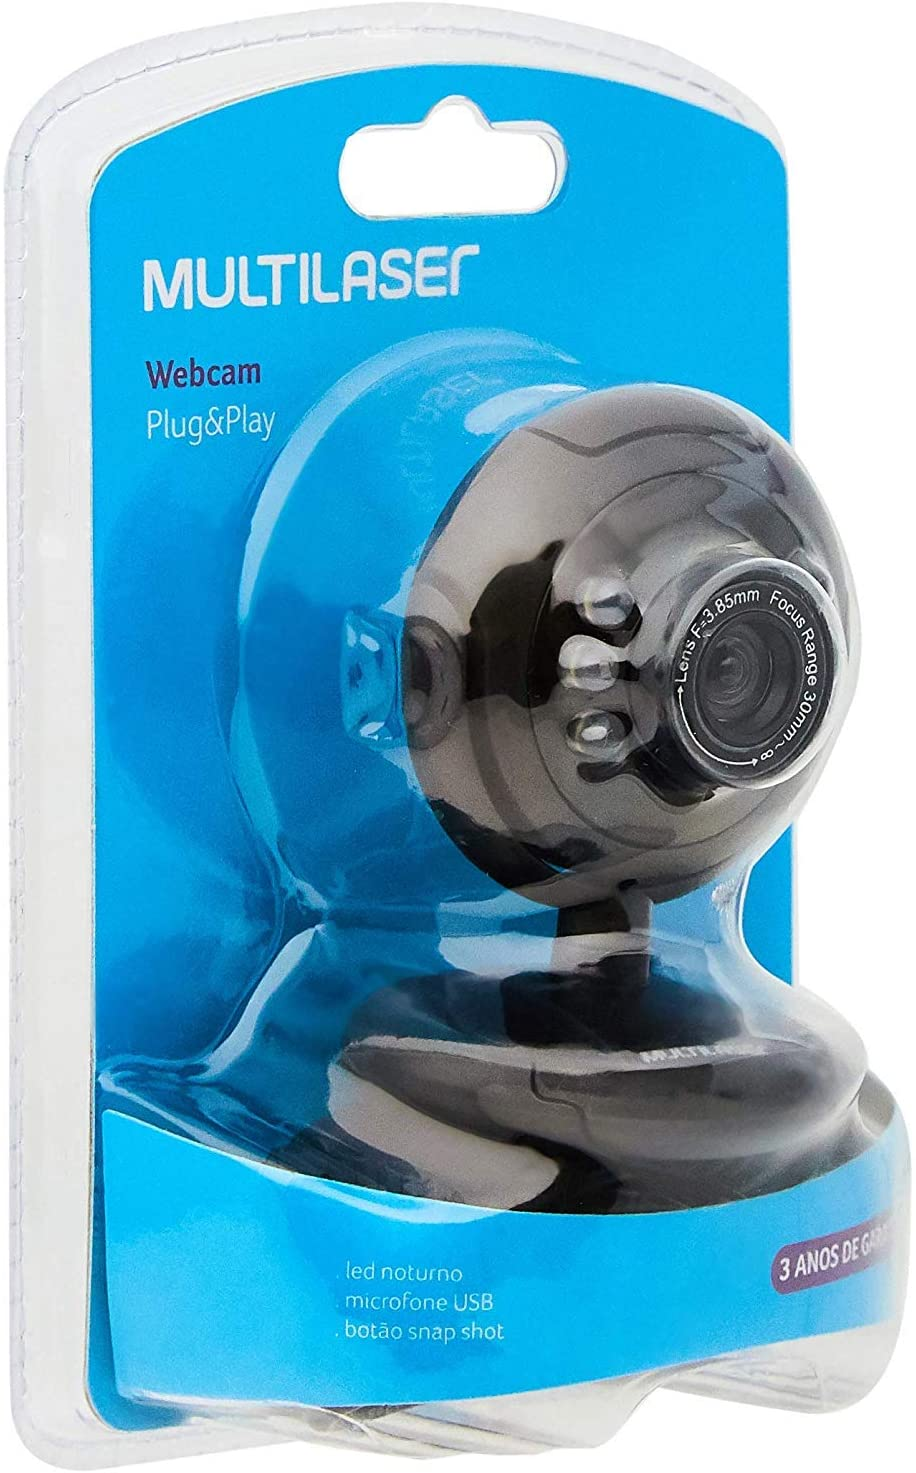 WEBCAM PLUGEPLAY 16MP NIGHTVISION MIC USB PRETO